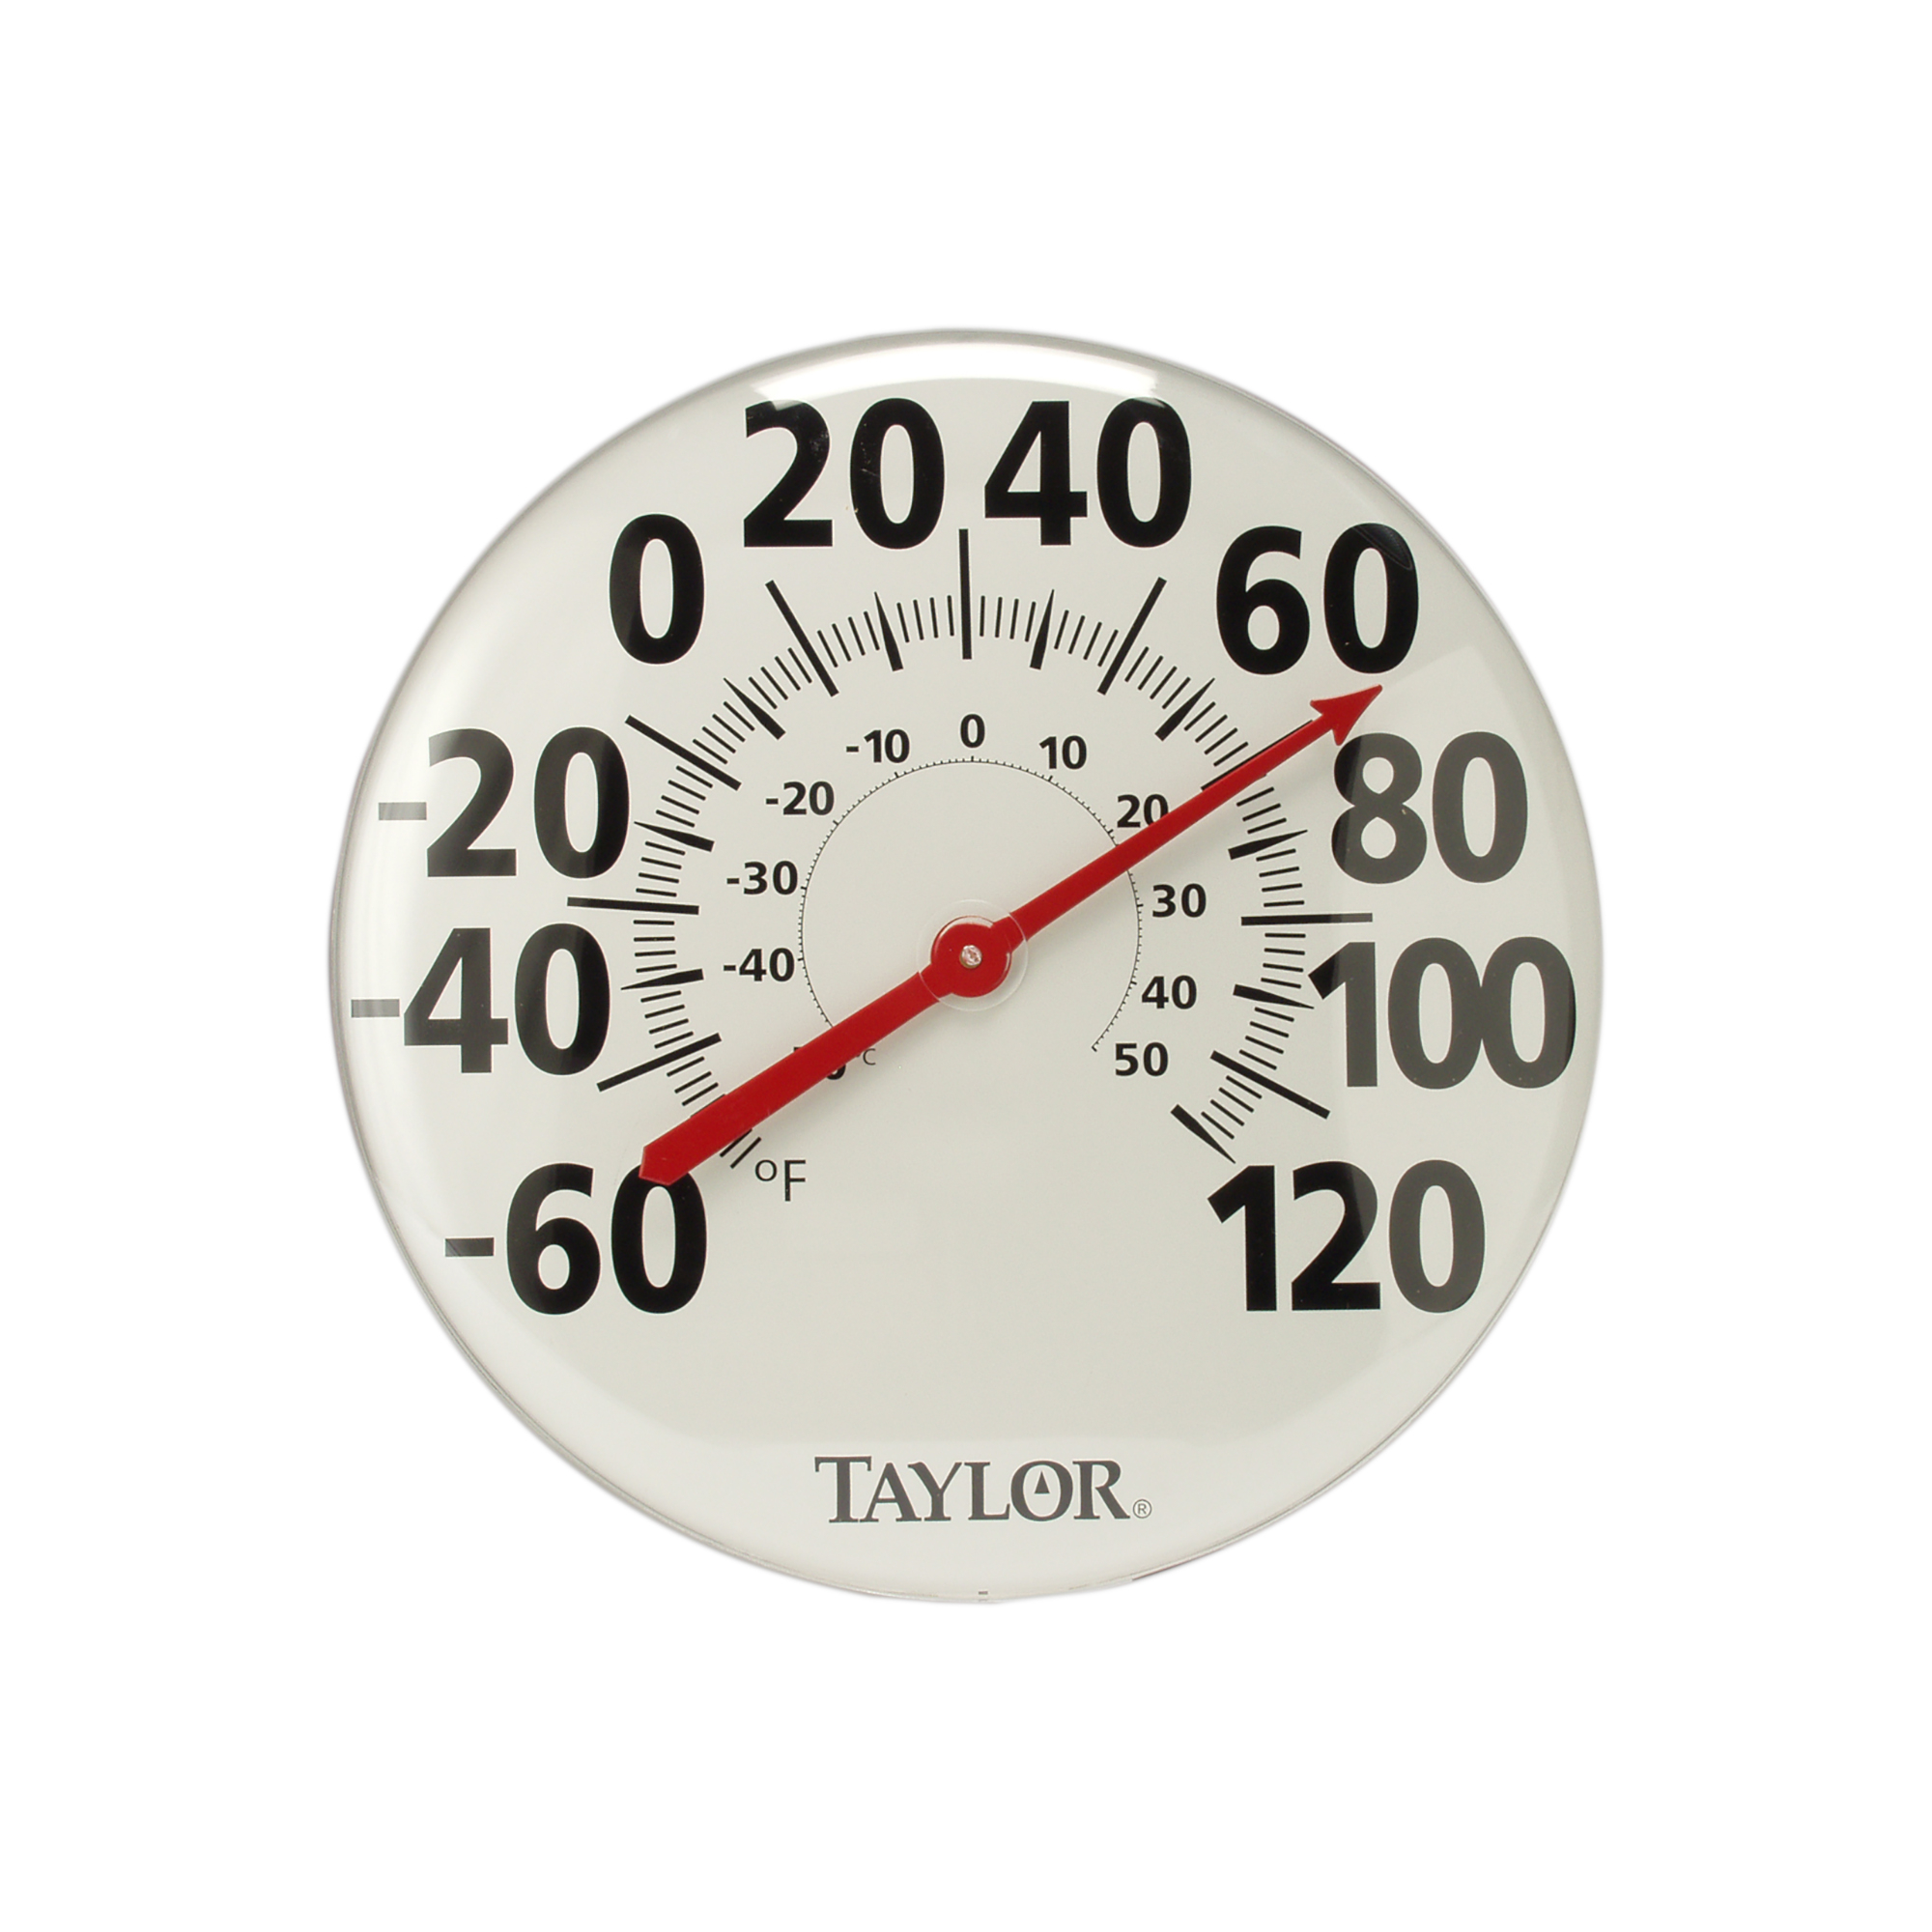 OUTDOOR THERMOMETER with Metal look ASSORTED COLORS